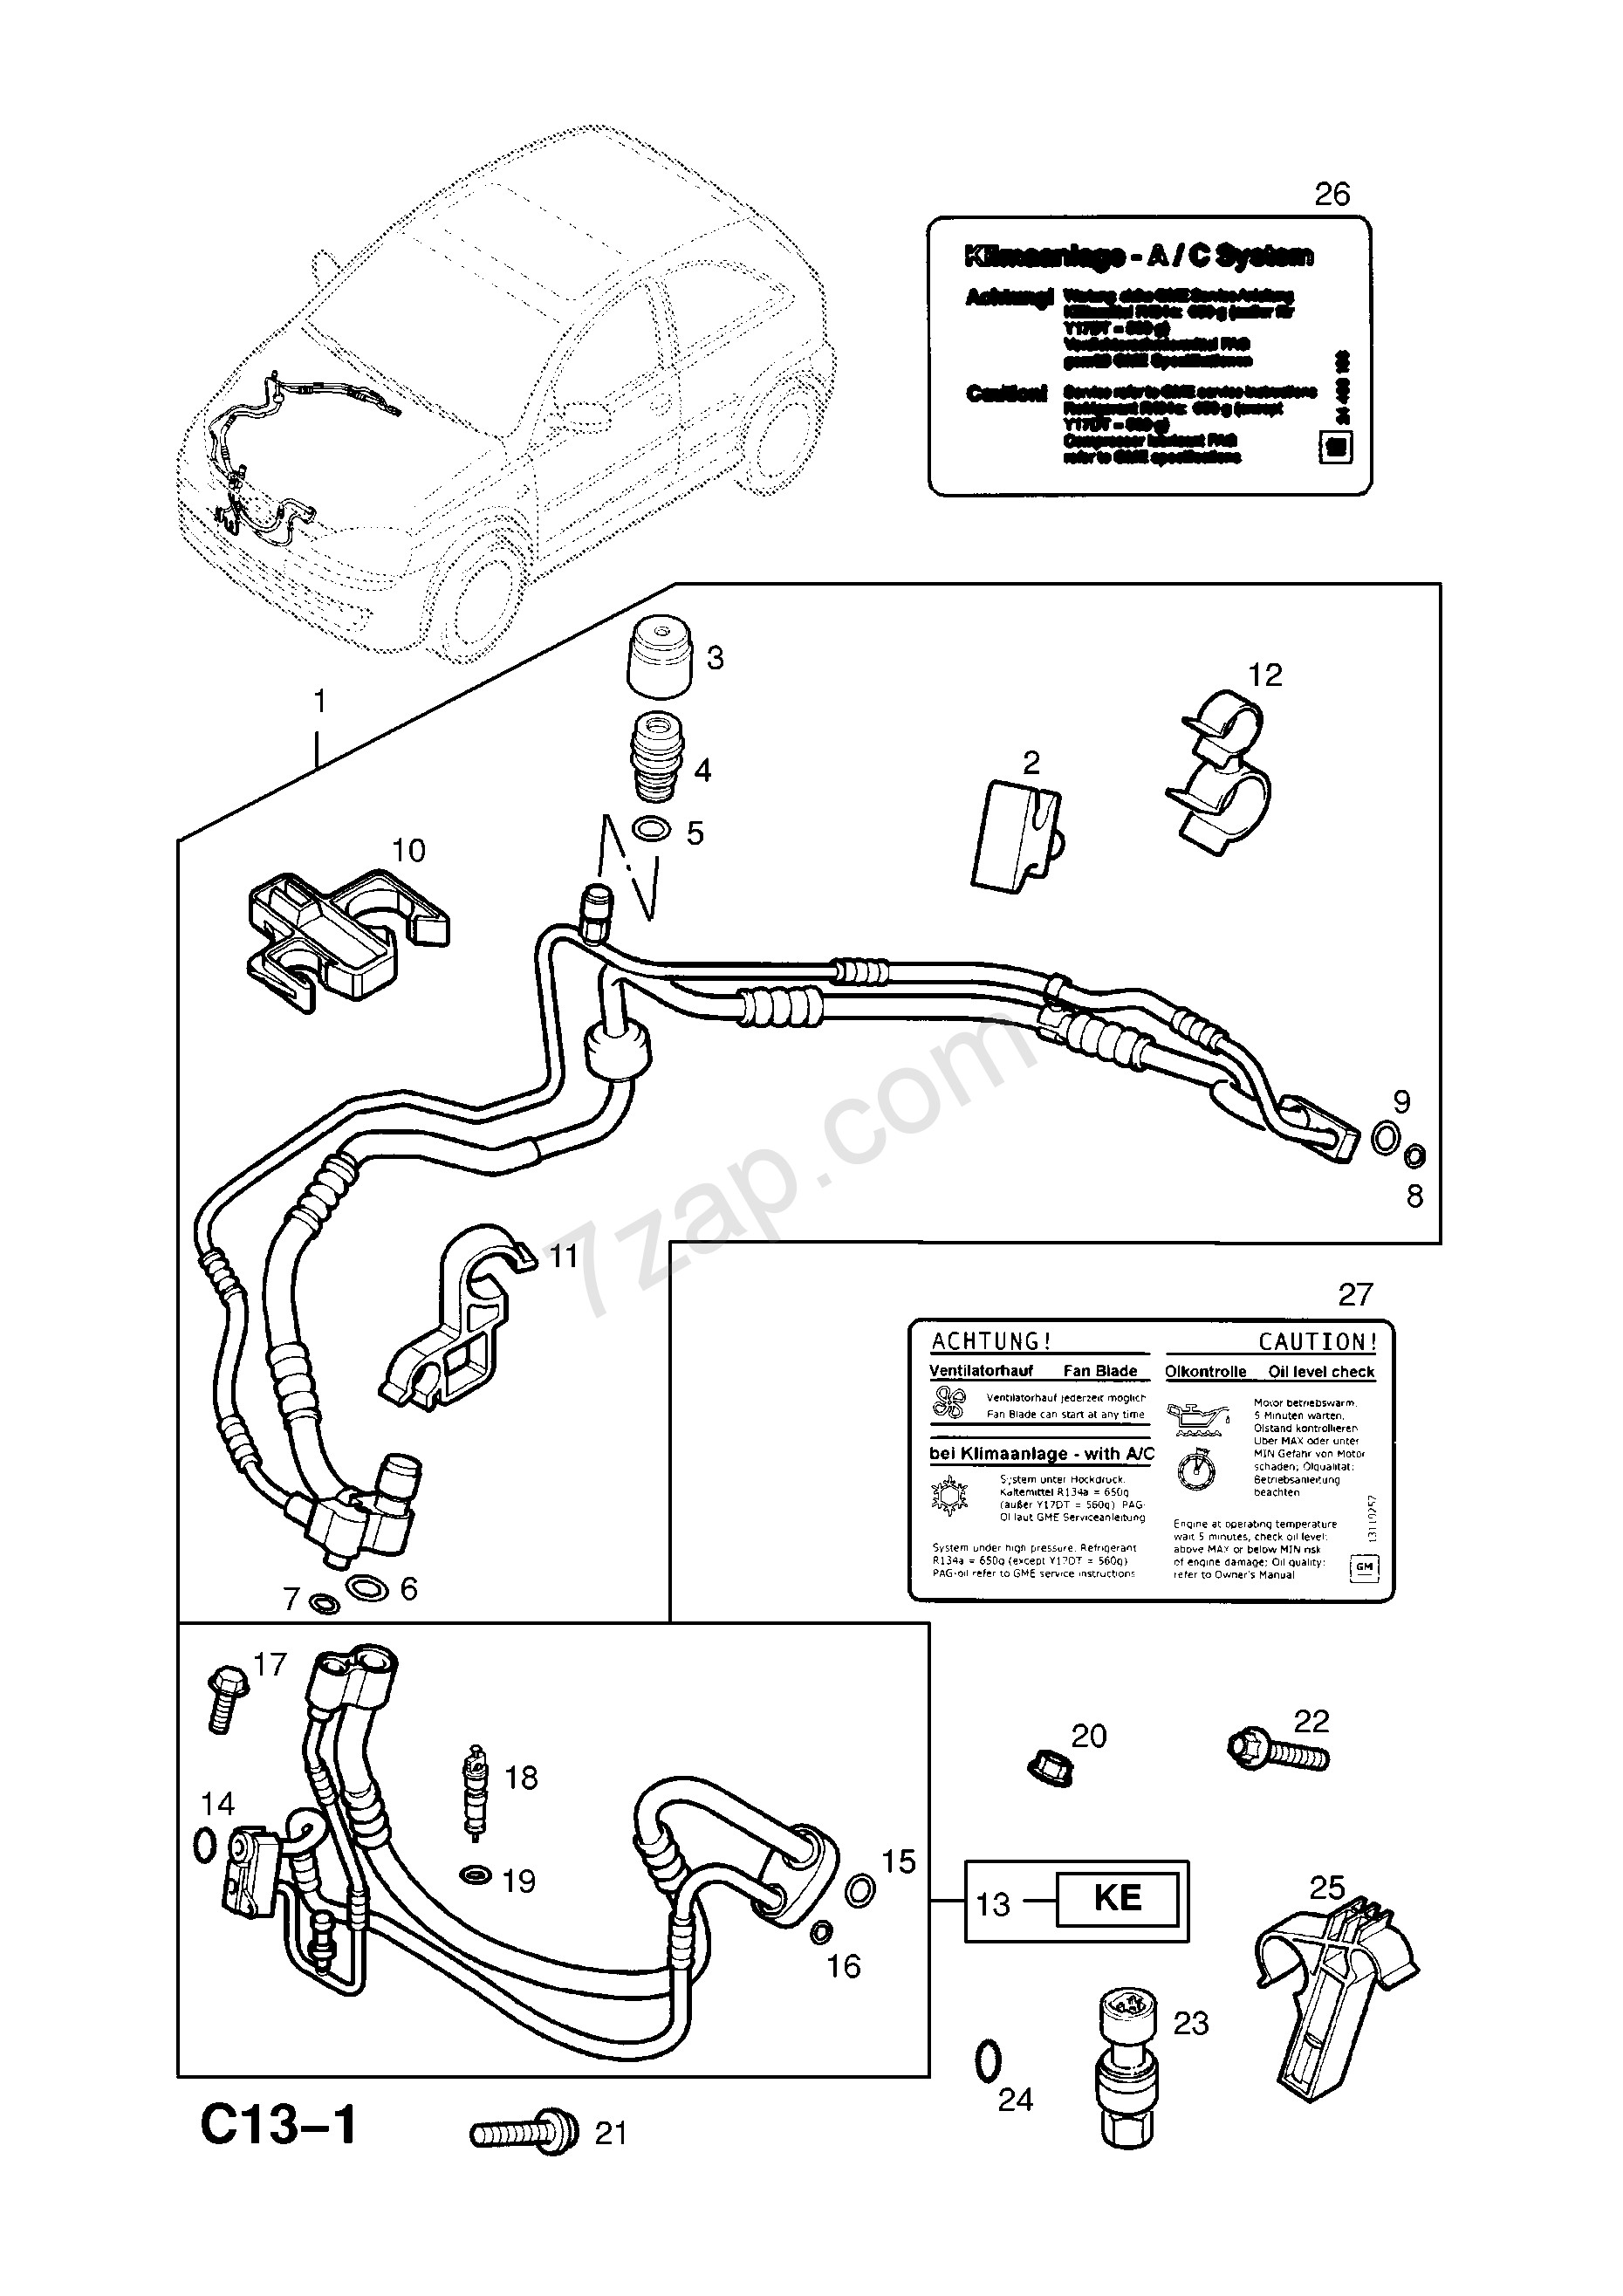 Vauxhall Corsa Engine Diagram My Wiring Diagrams Refrigerant Hose And Liquid Pipes Contd Z16sel55 Petrol